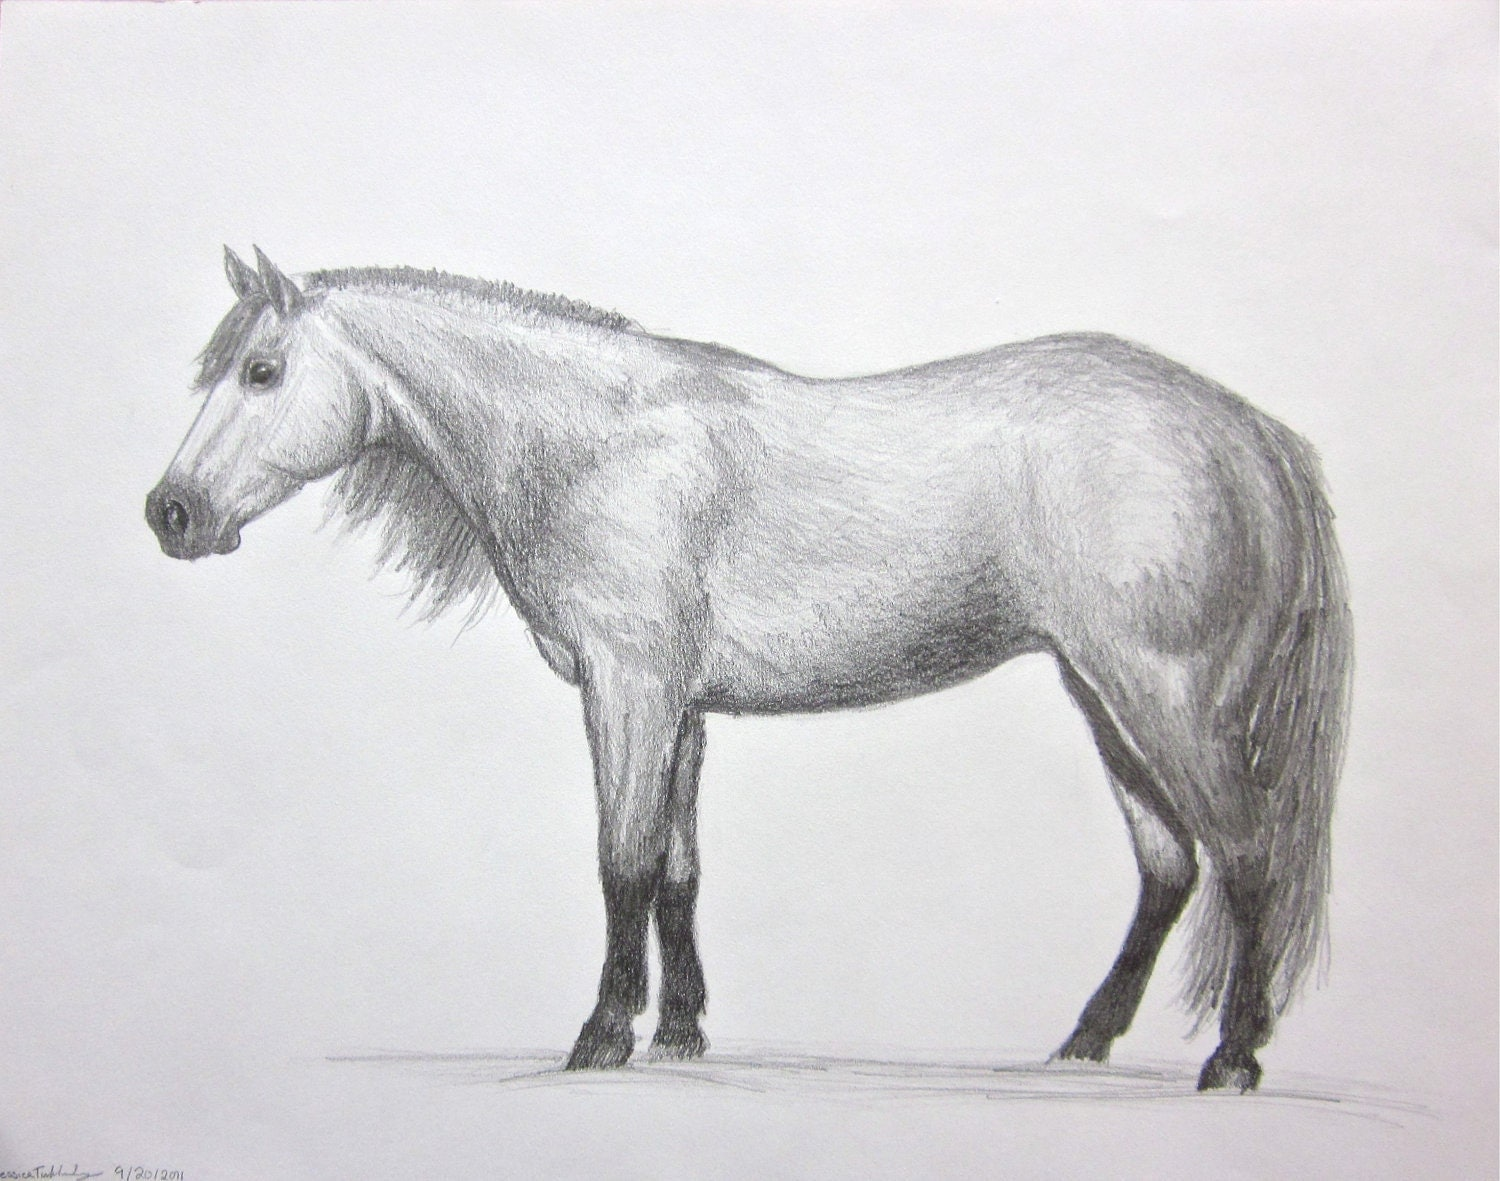 Quarter horse drawing - photo#13